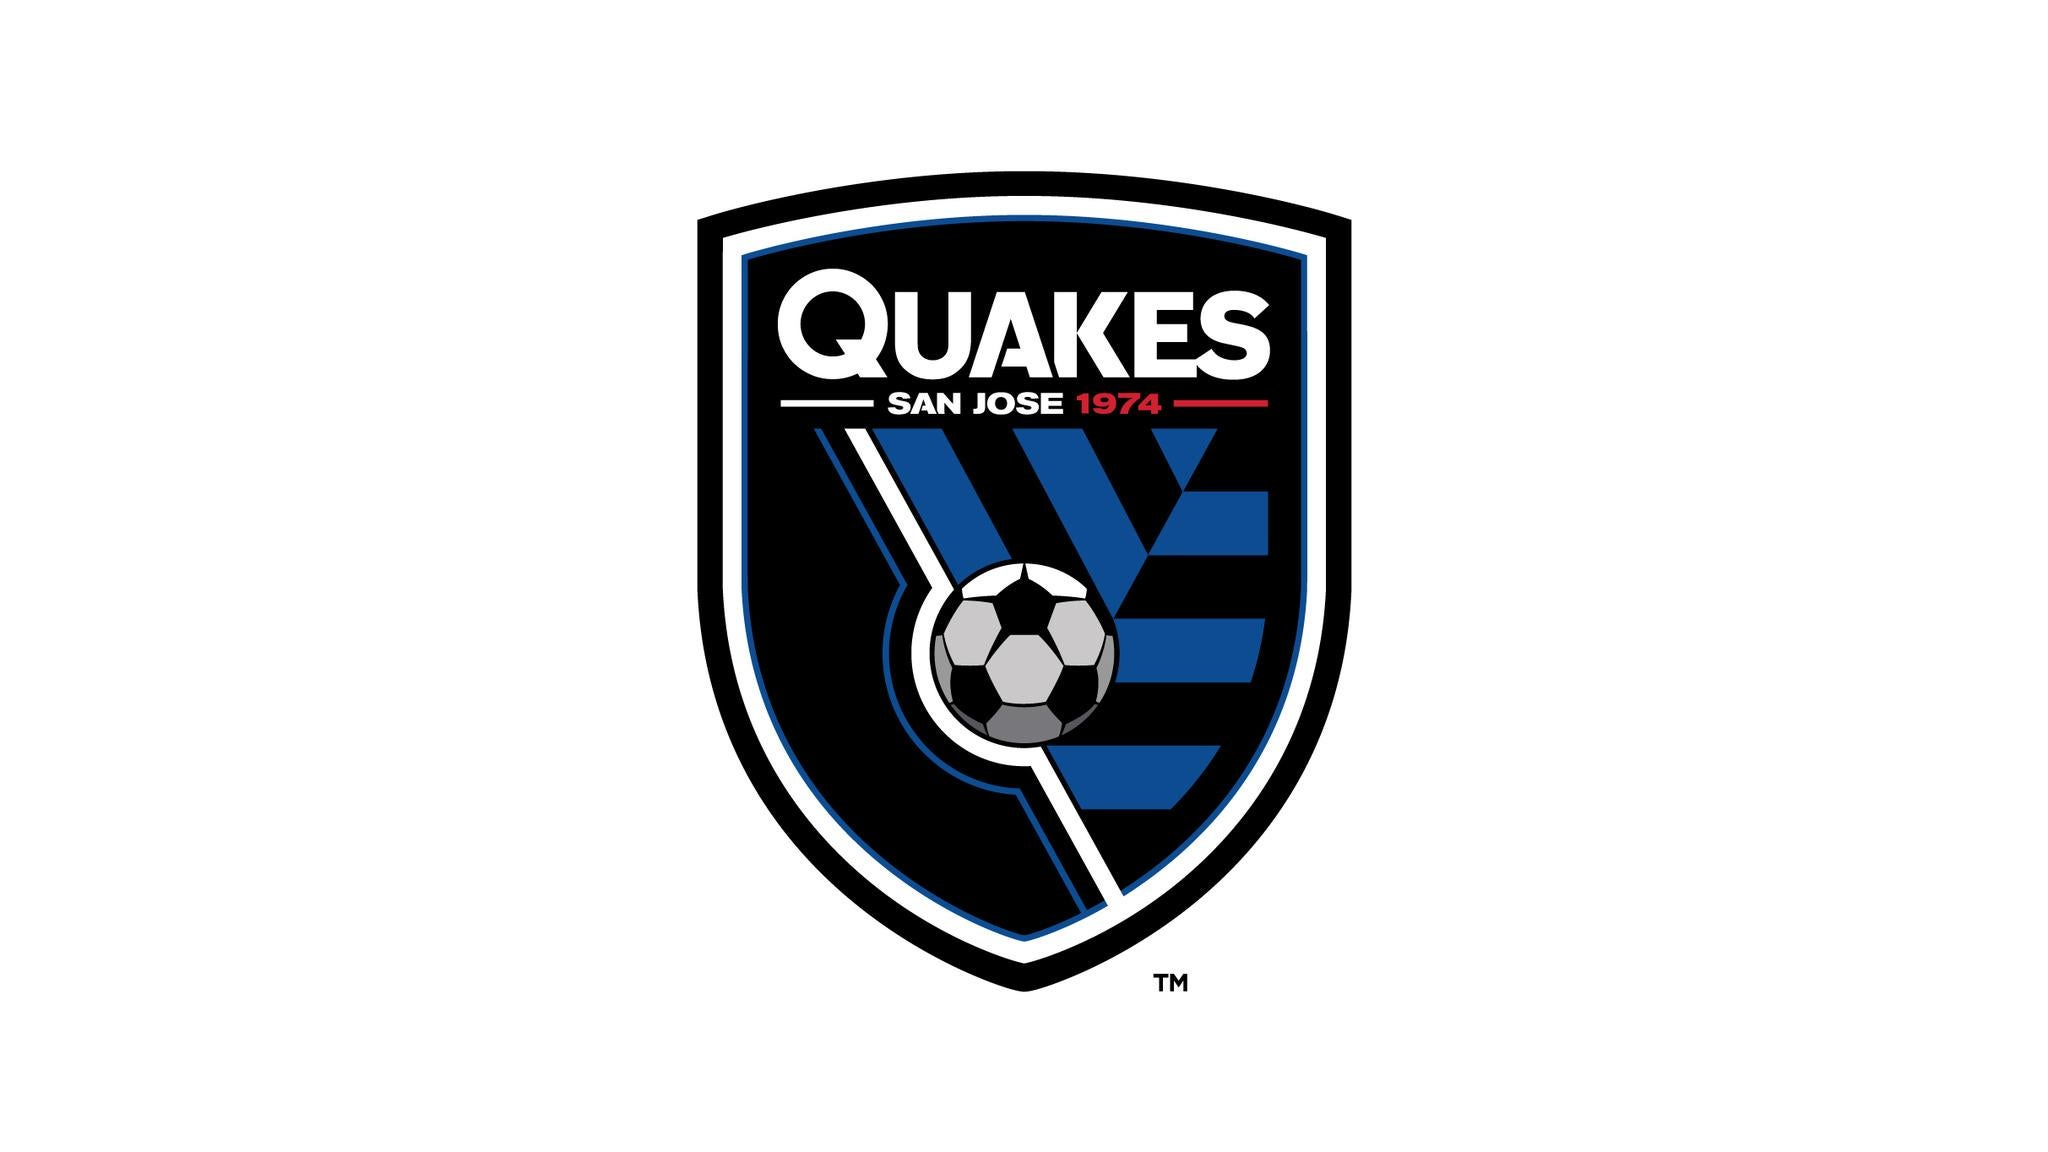 San Jose Earthquakes vs. Colorado Rapids at Avaya Stadium